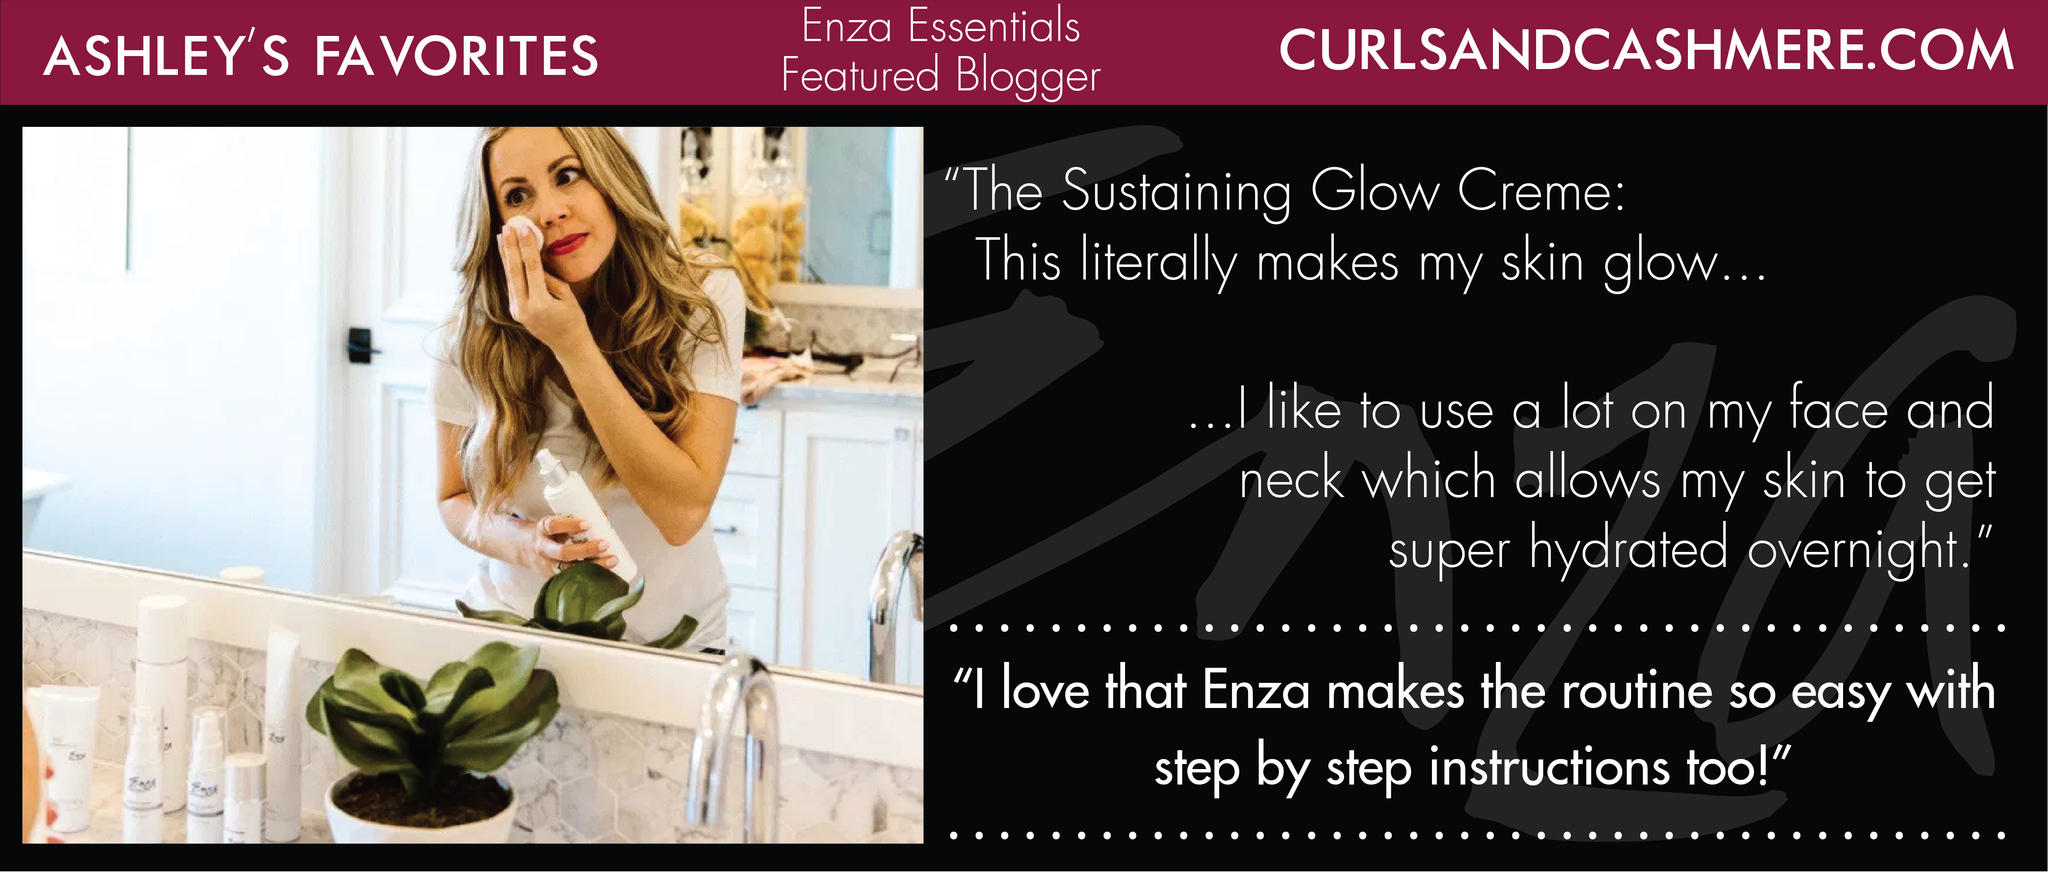 Curls and Cashmere Ashley Enza Essentials Featured Blogger Review